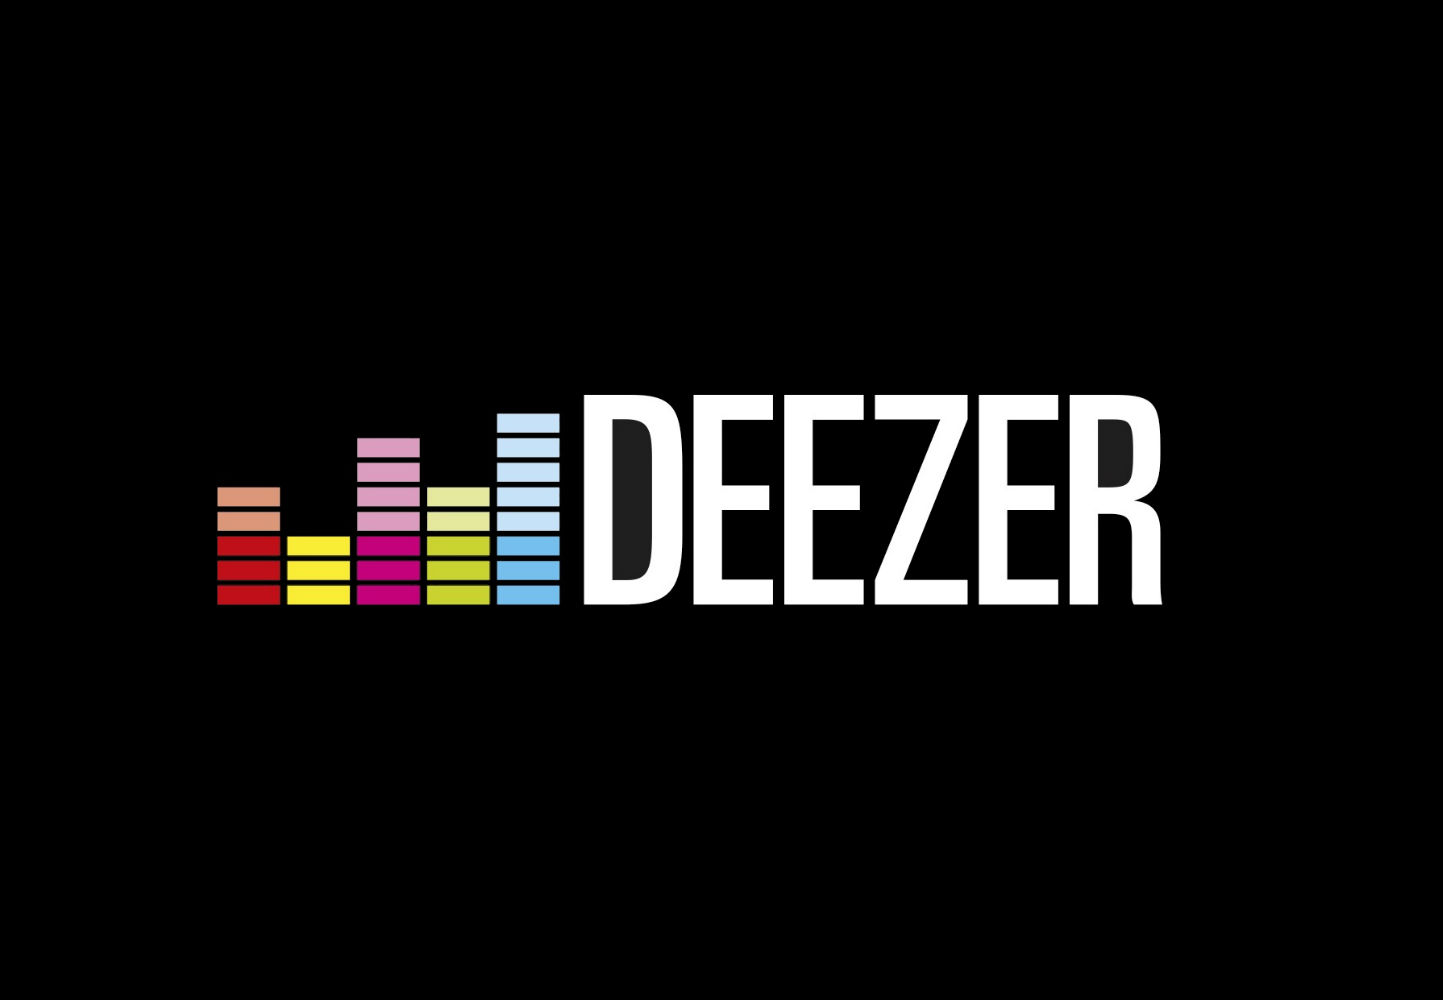 Deezer launches 'Elite' high-quality streaming service worldwide